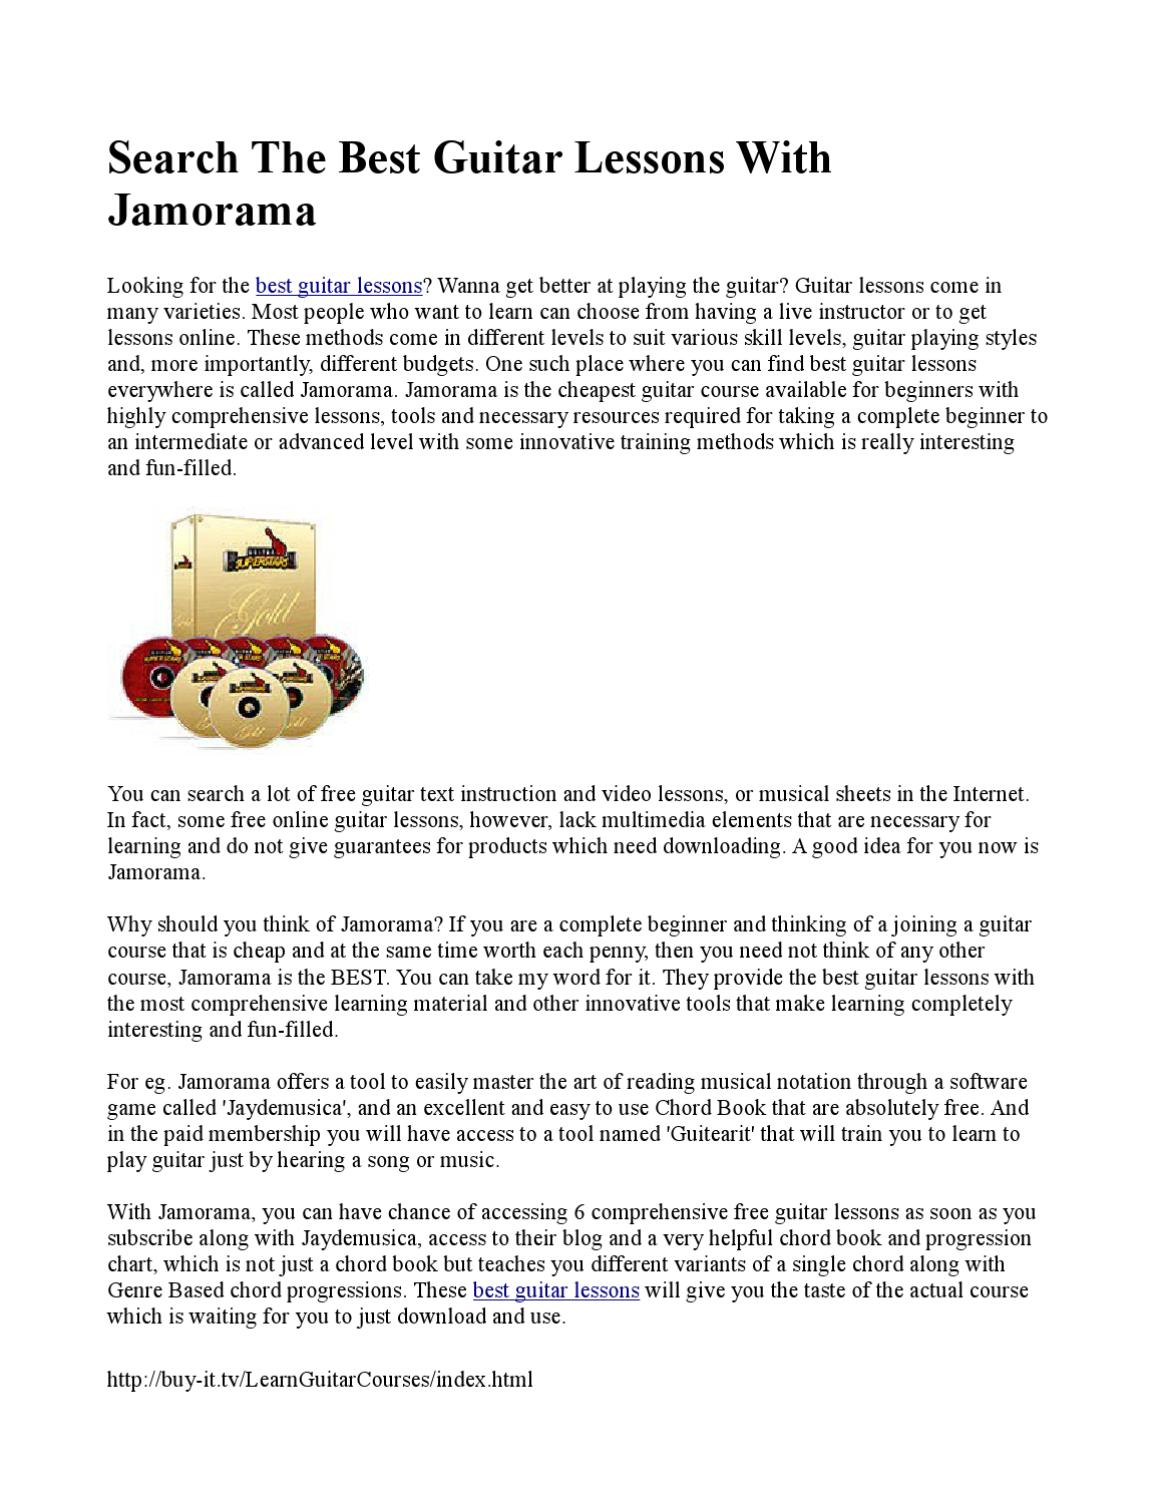 Search The Best Guitar Lessons With Jamorama By Penny Mena Issuu